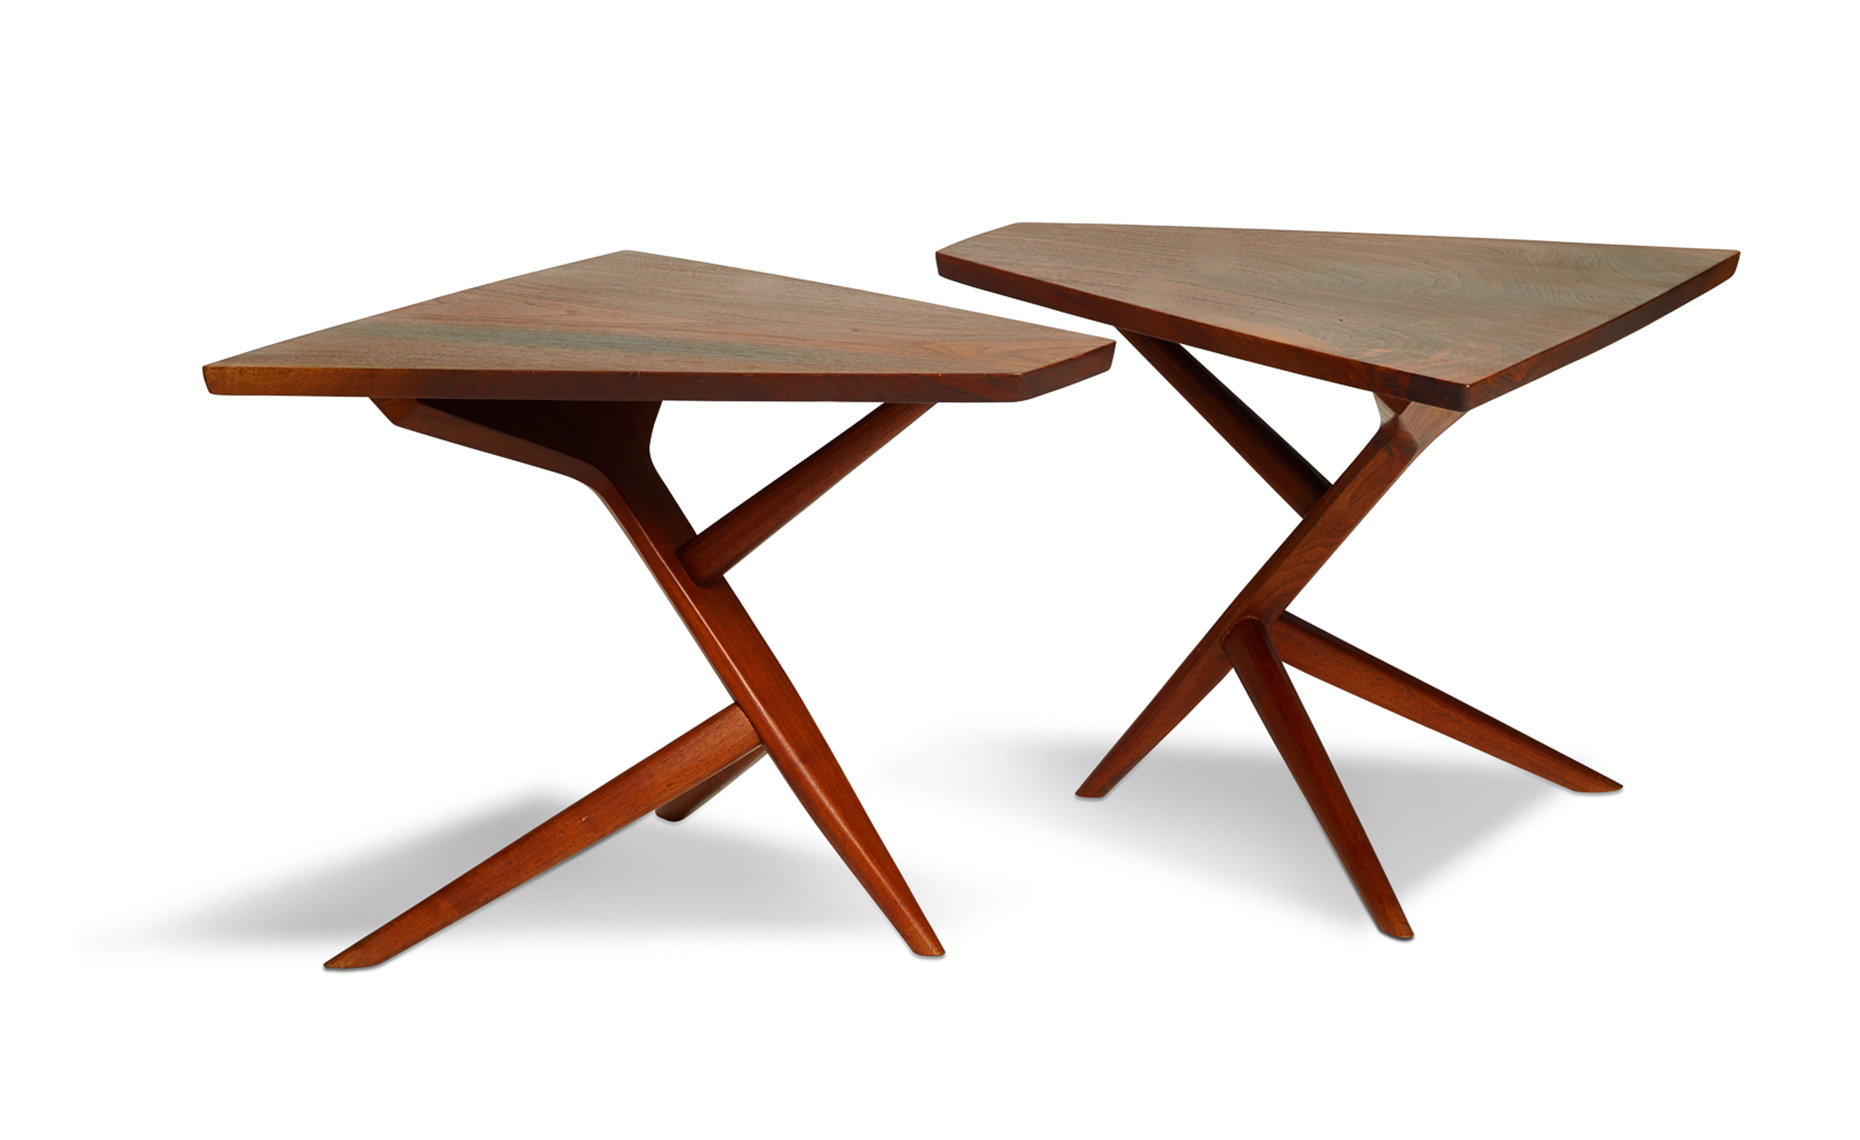 Ashby_Pair-of-side-tables-9855